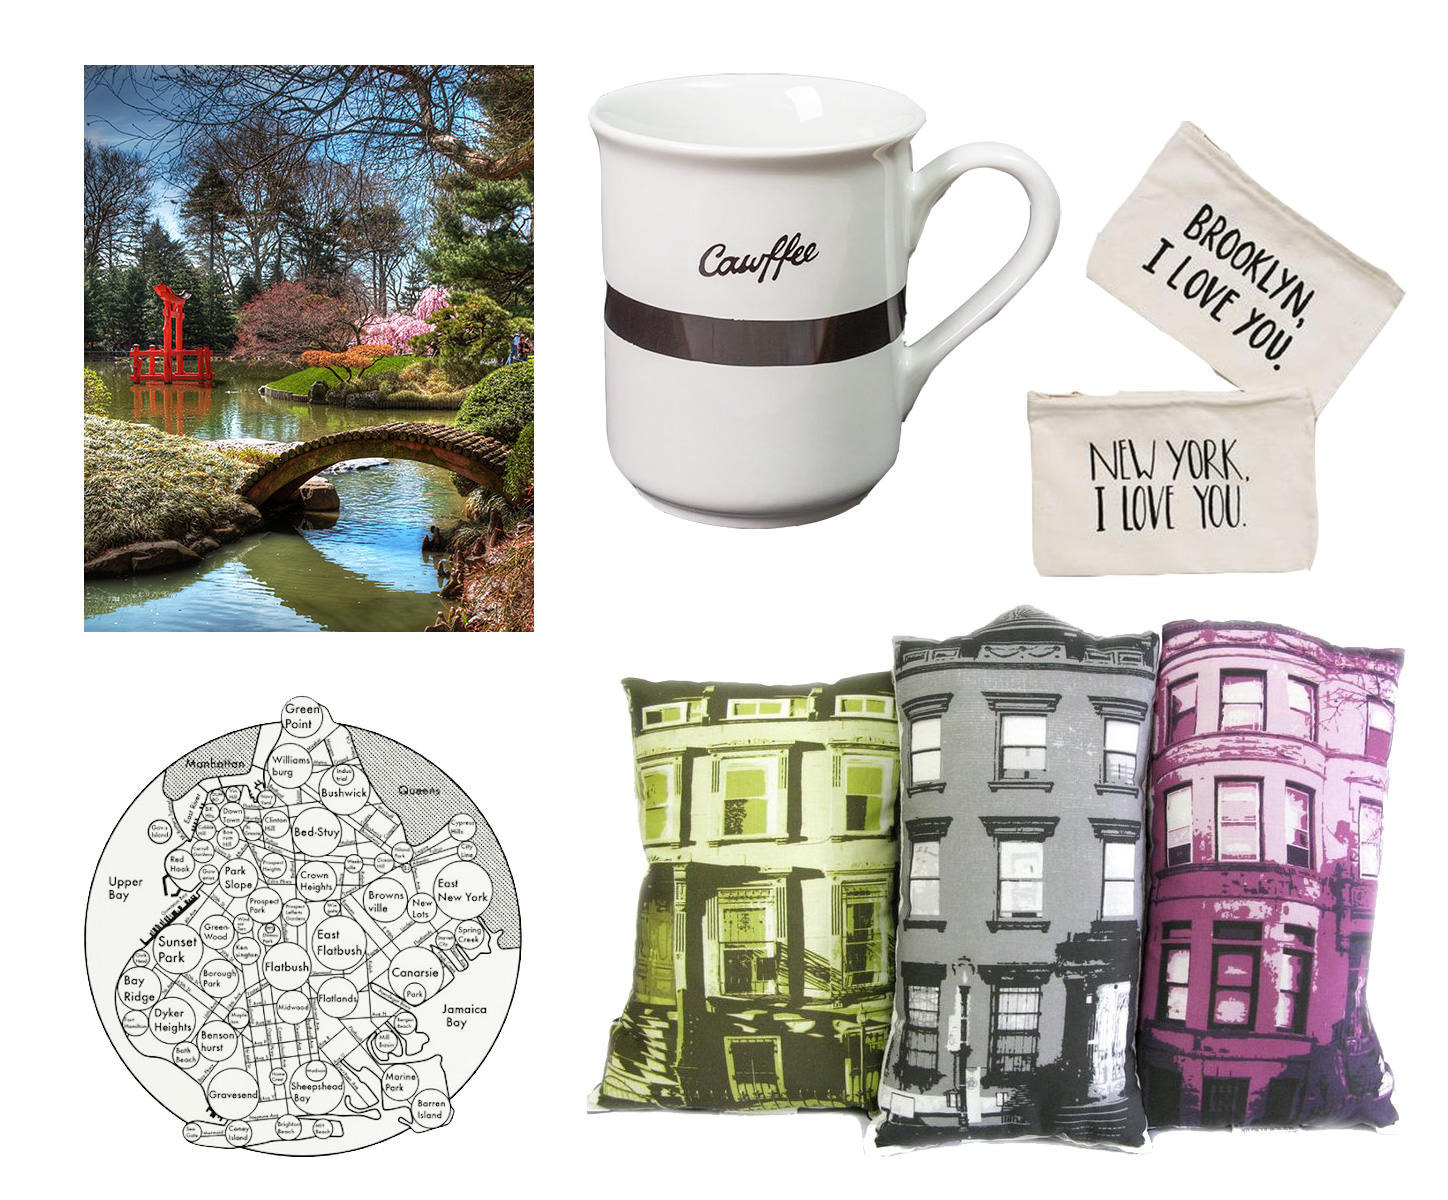 40 NYC-themed gifts for every type of New Yorker | 6sqft